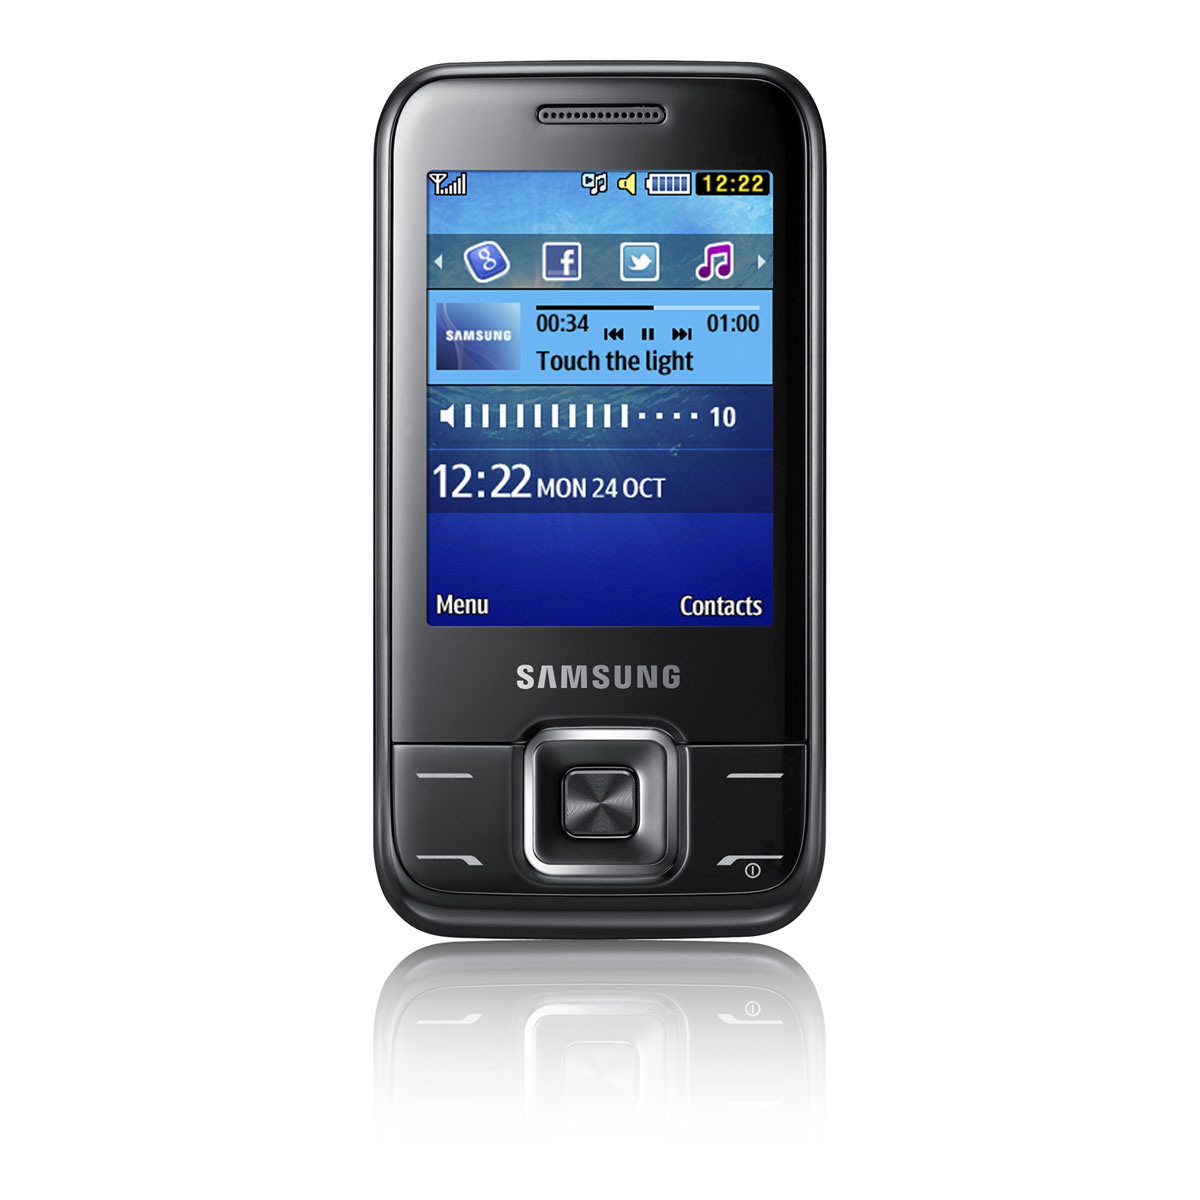 samsung e2600 noir mobile smartphone samsung sur. Black Bedroom Furniture Sets. Home Design Ideas